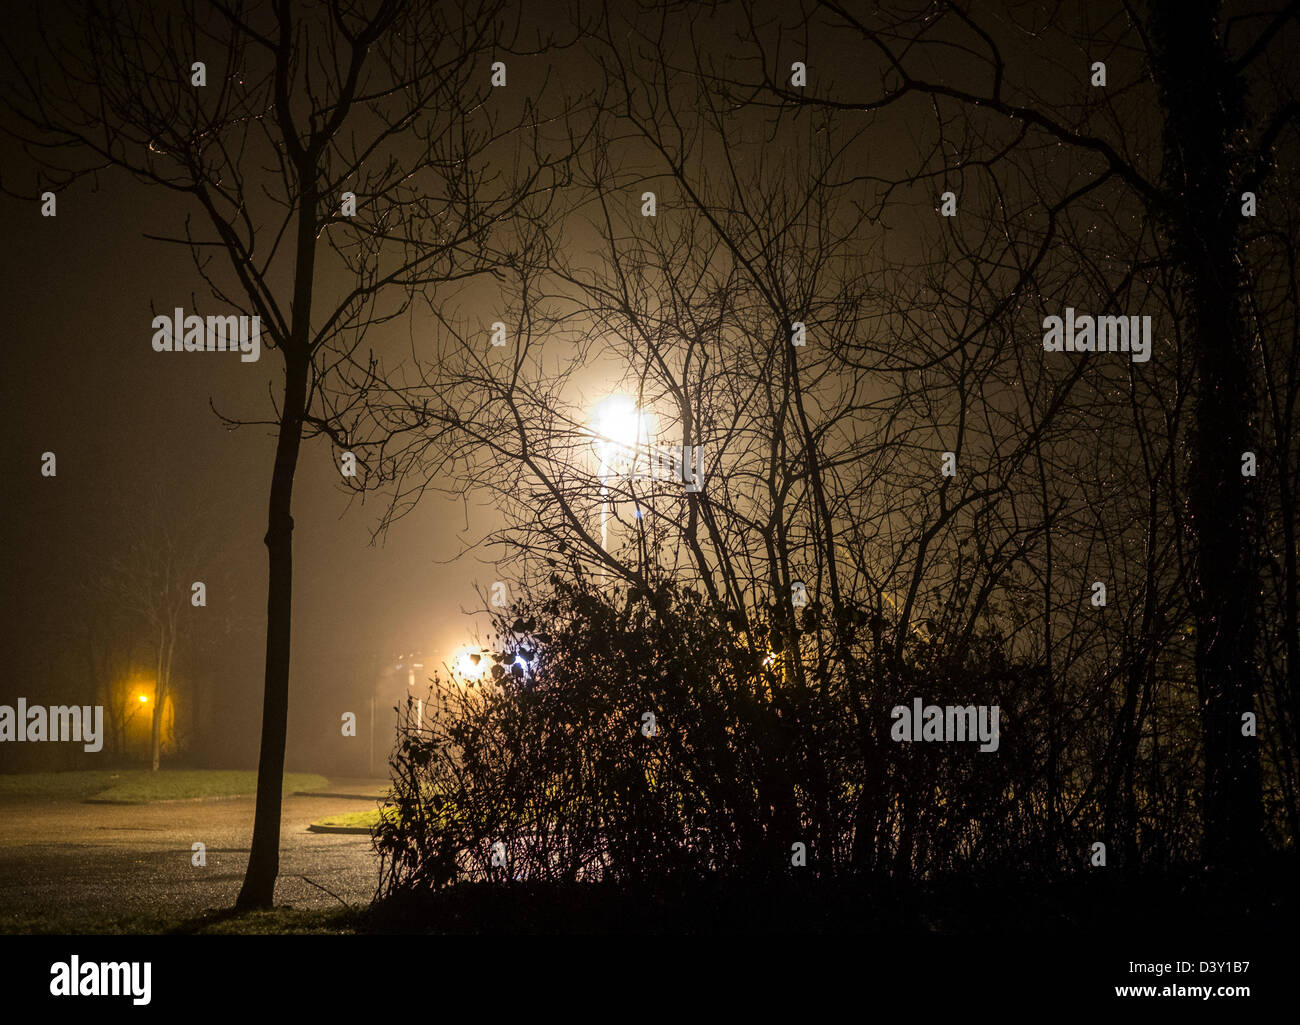 Street lights illuminate trees and bushes on a cold, damp, misty evening, WOrcestershire, UK - Stock Image